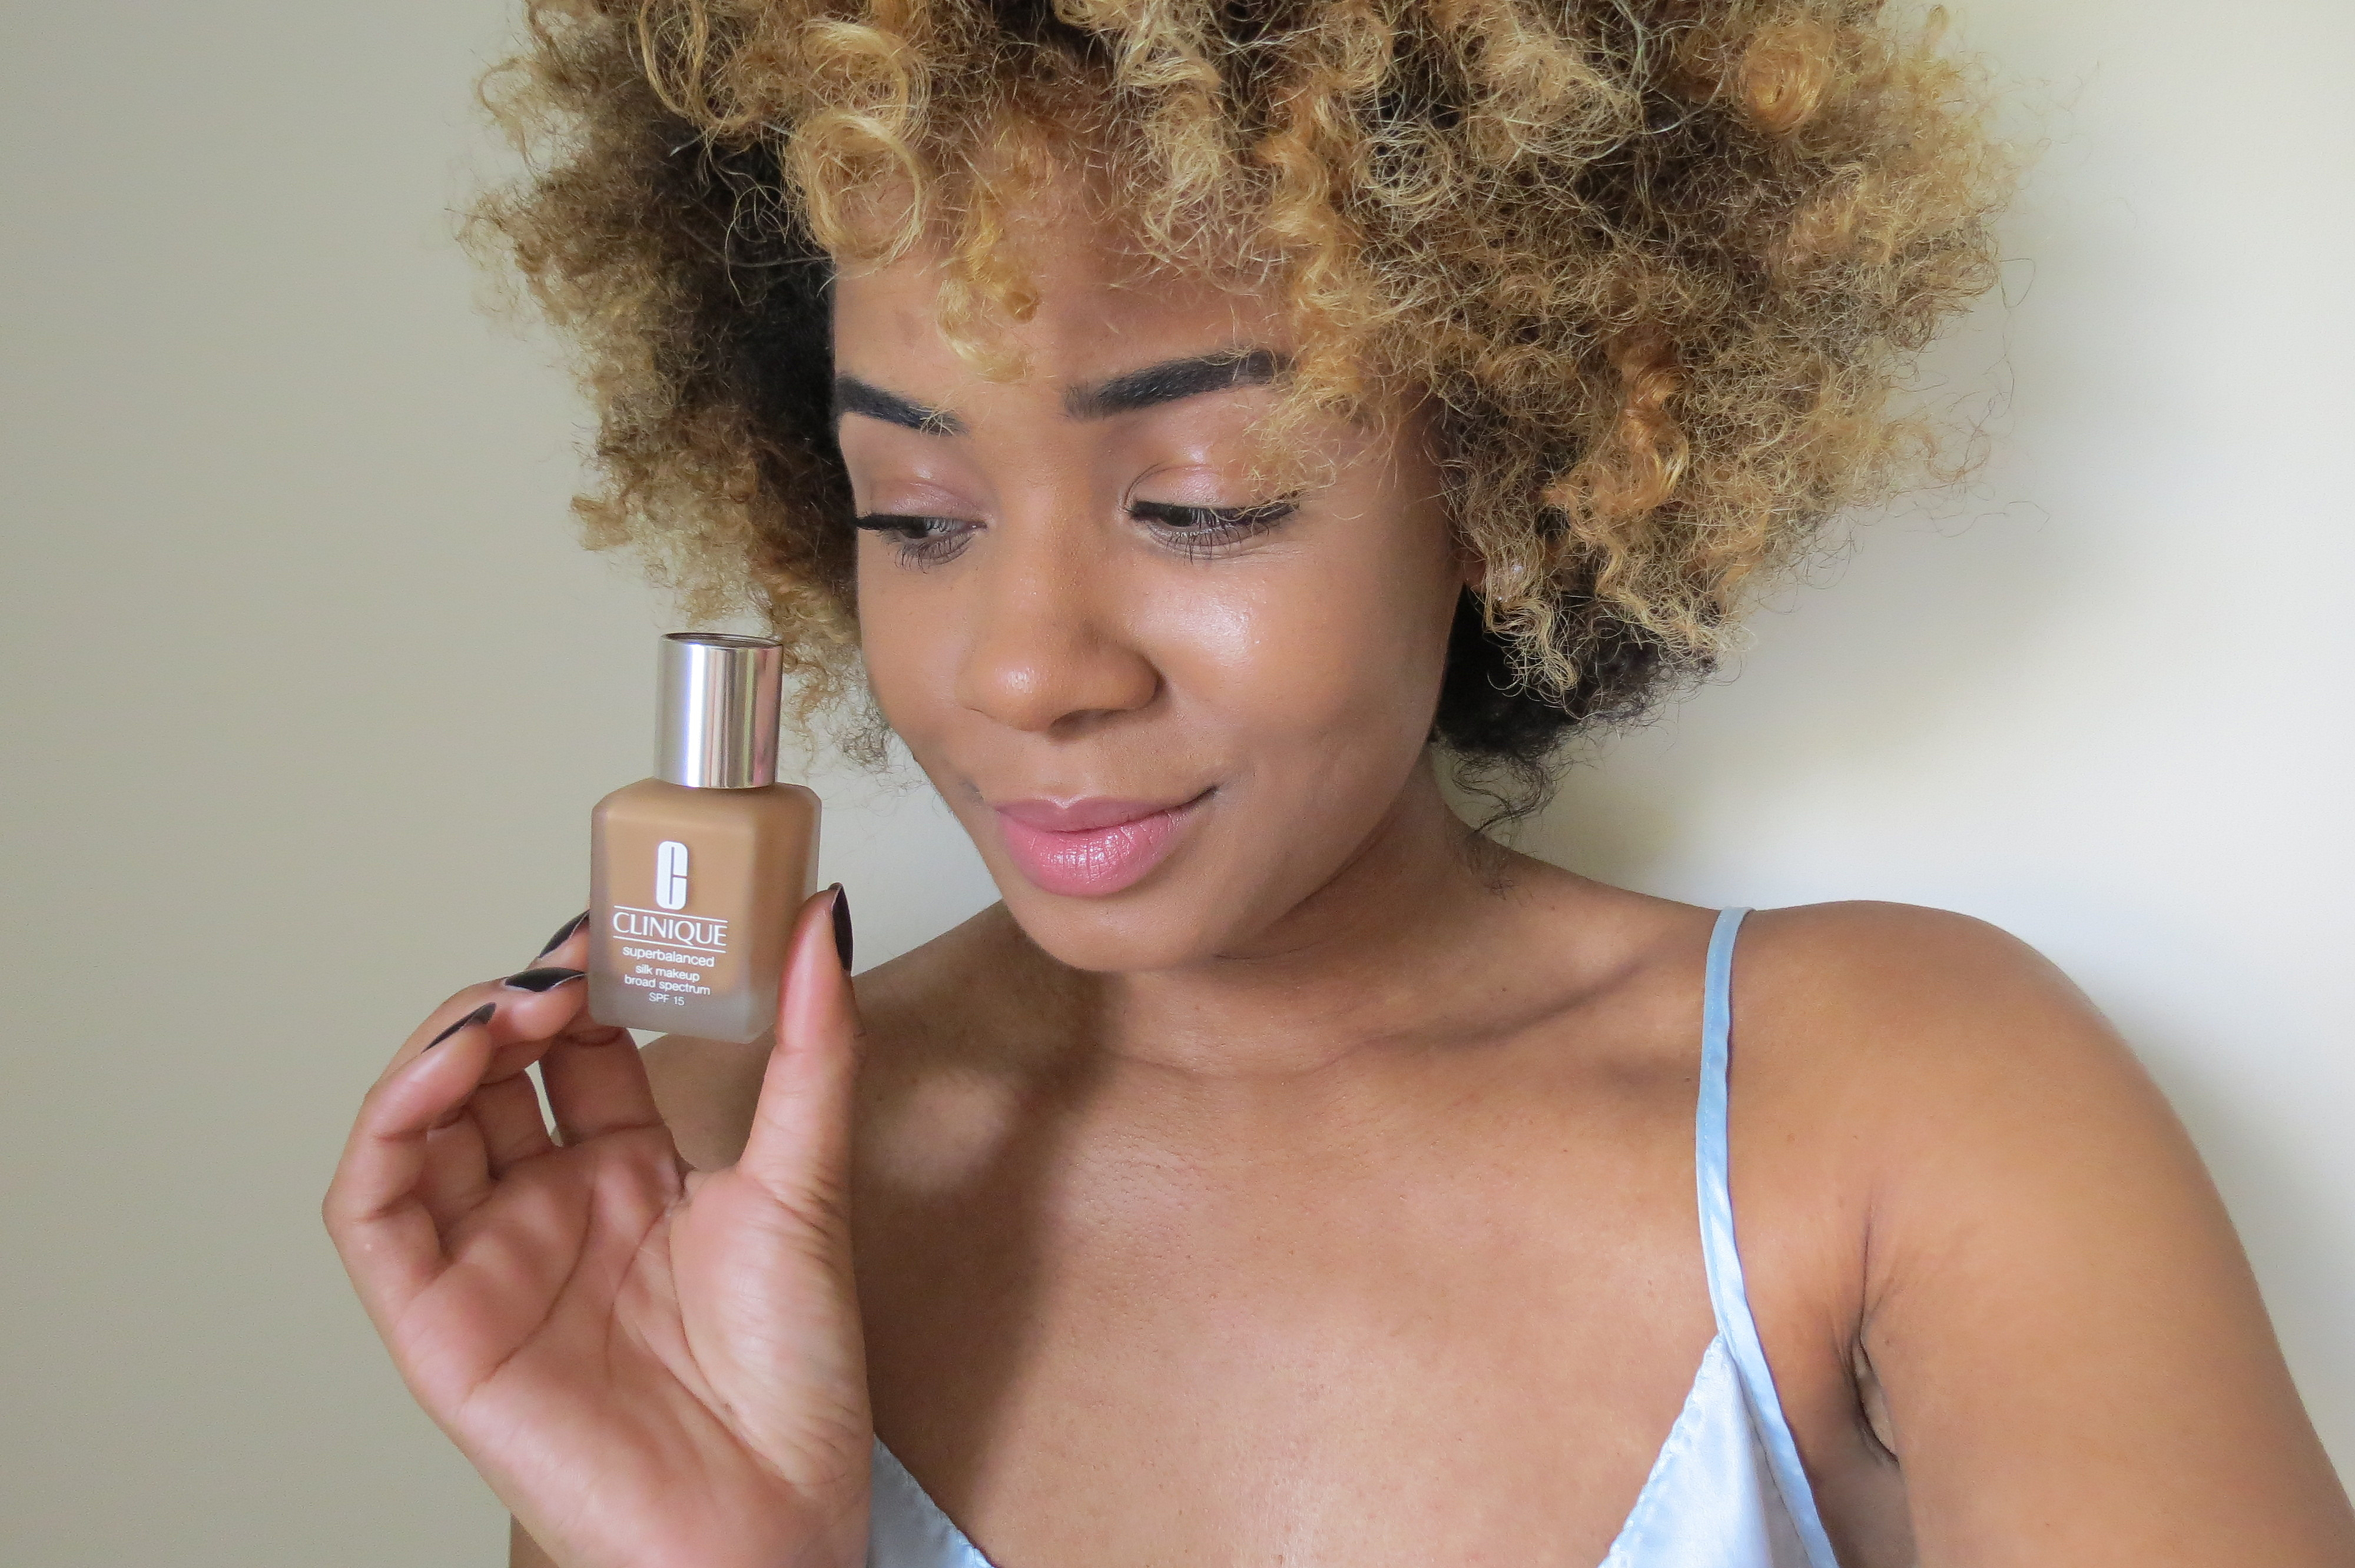 Review: Clinique's Superbalanced Silk Makeup Broad Spectrum SPF 15 Foundation